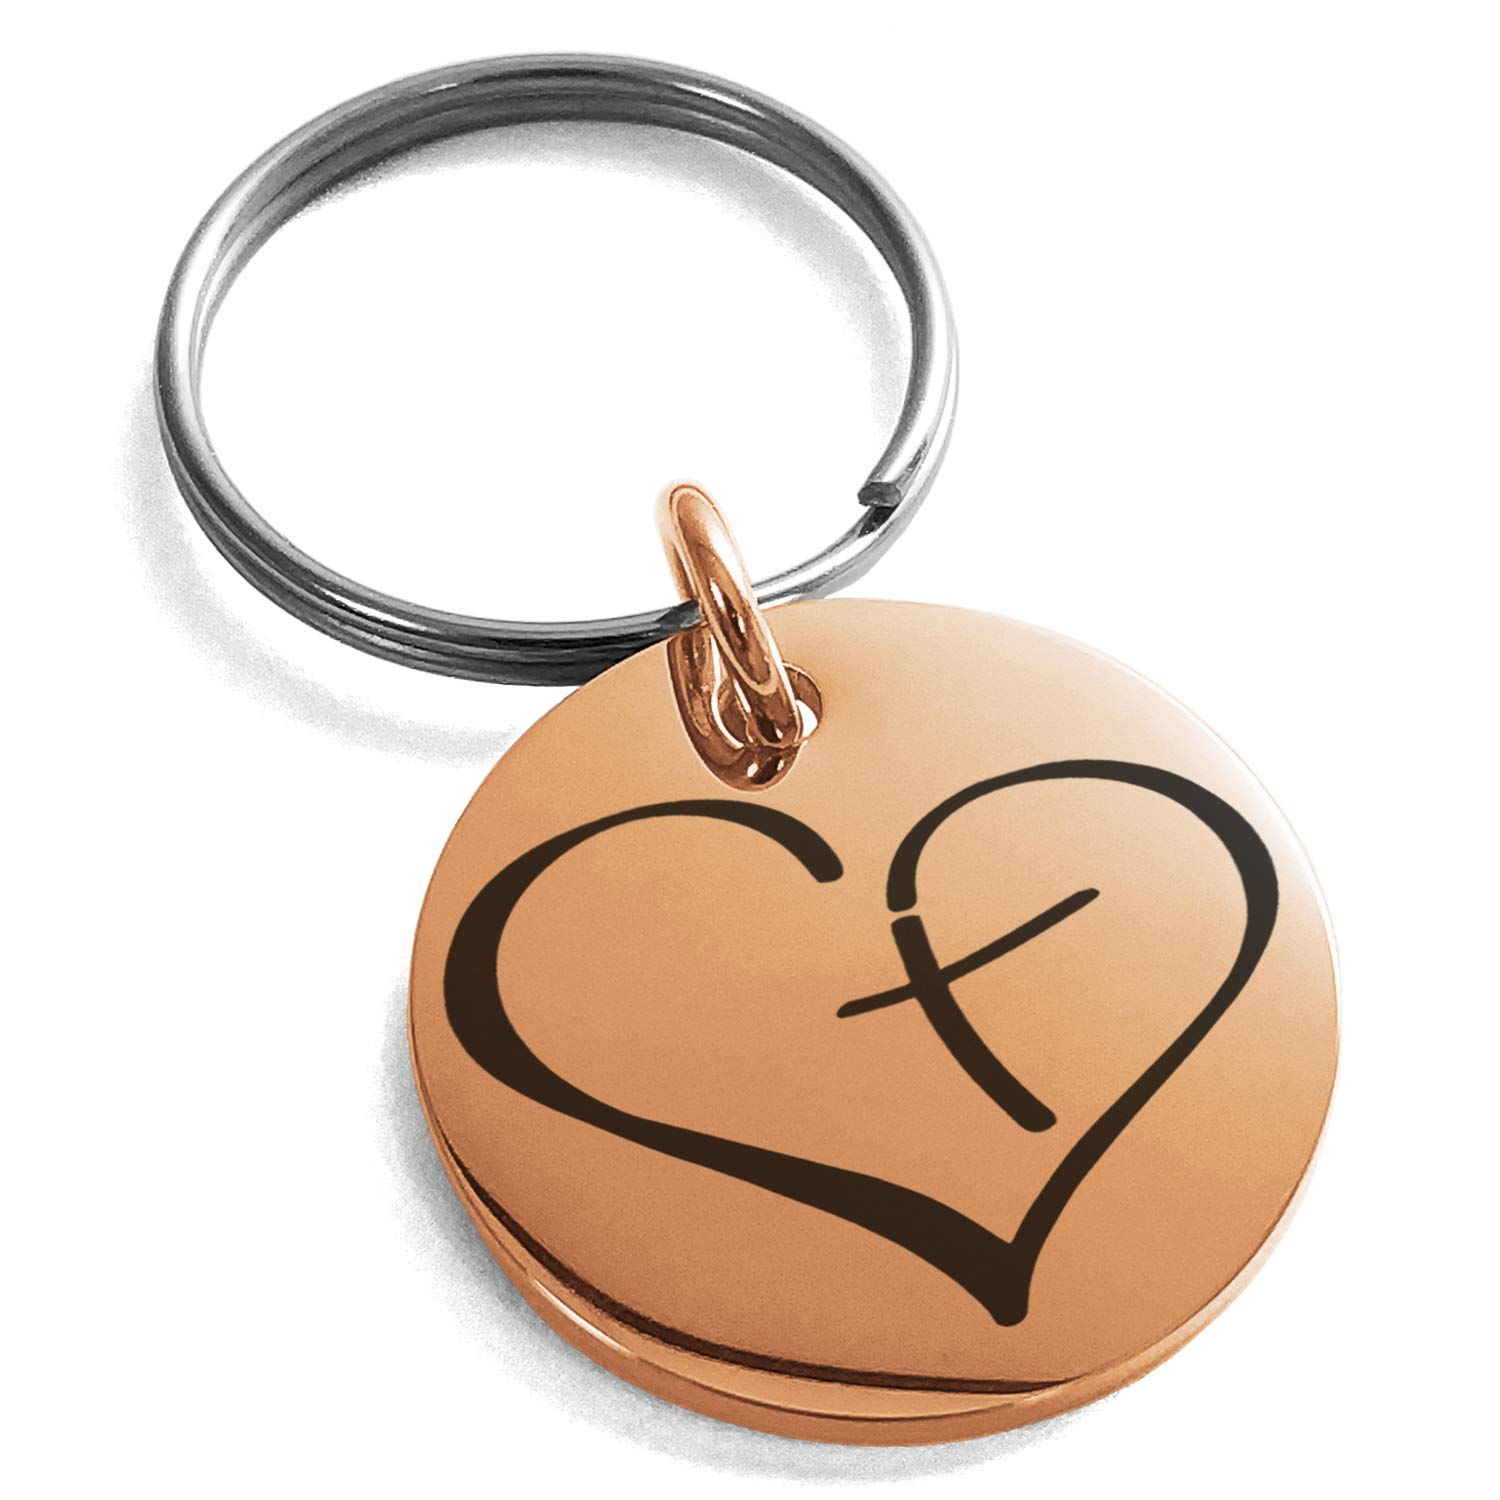 Tioneer Rose Gold Plated Stainless Steel Cross My Heart Engraved Small Medallion Circle Charm Keychain Keyring